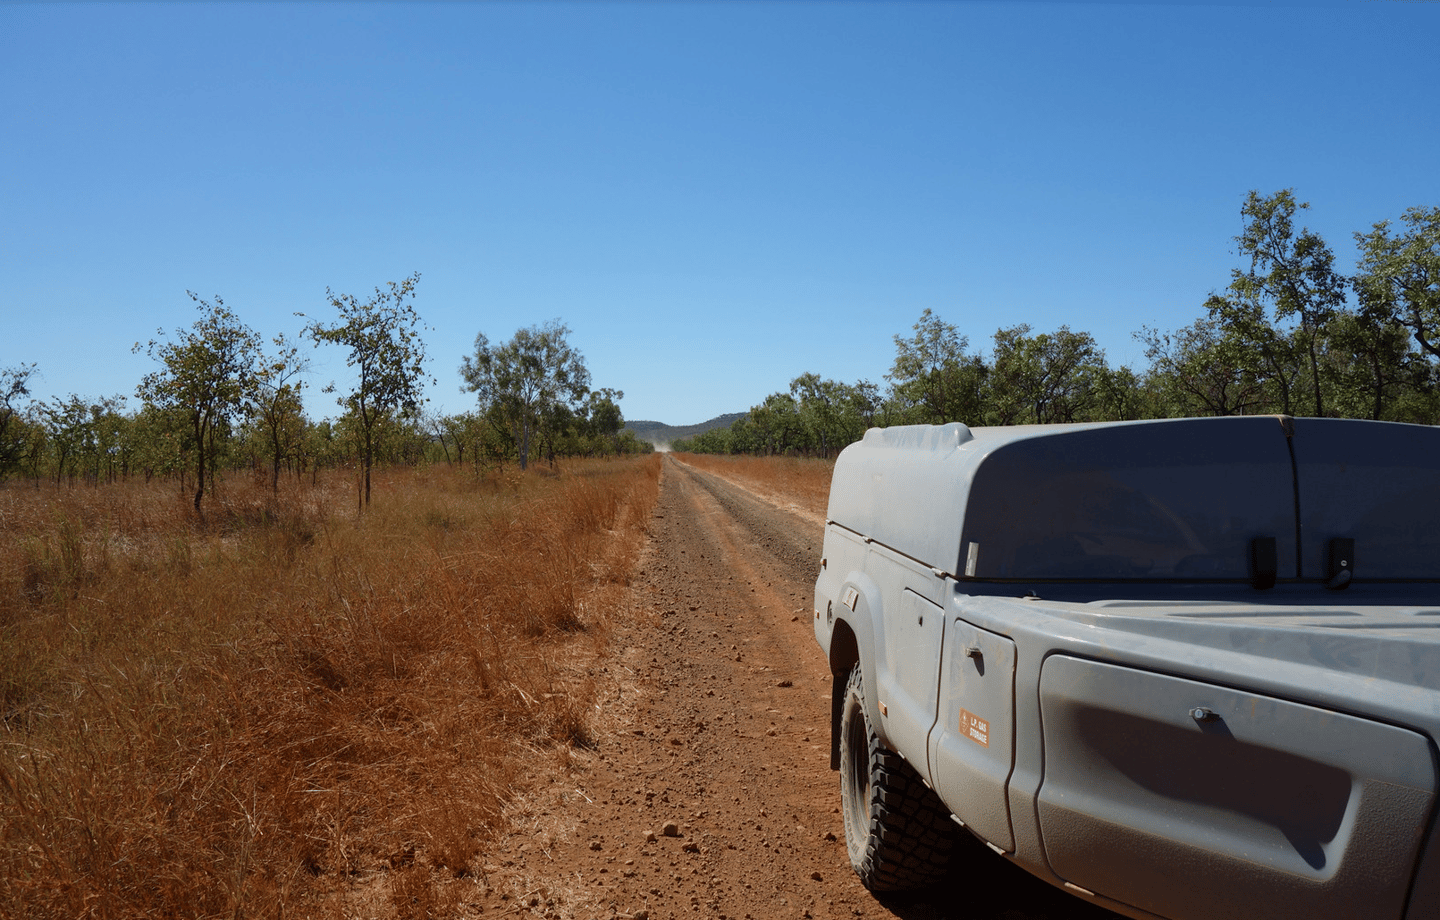 Kerfton has been testing its trailer on corrugated dirt roads and rougher 4x4 tracks